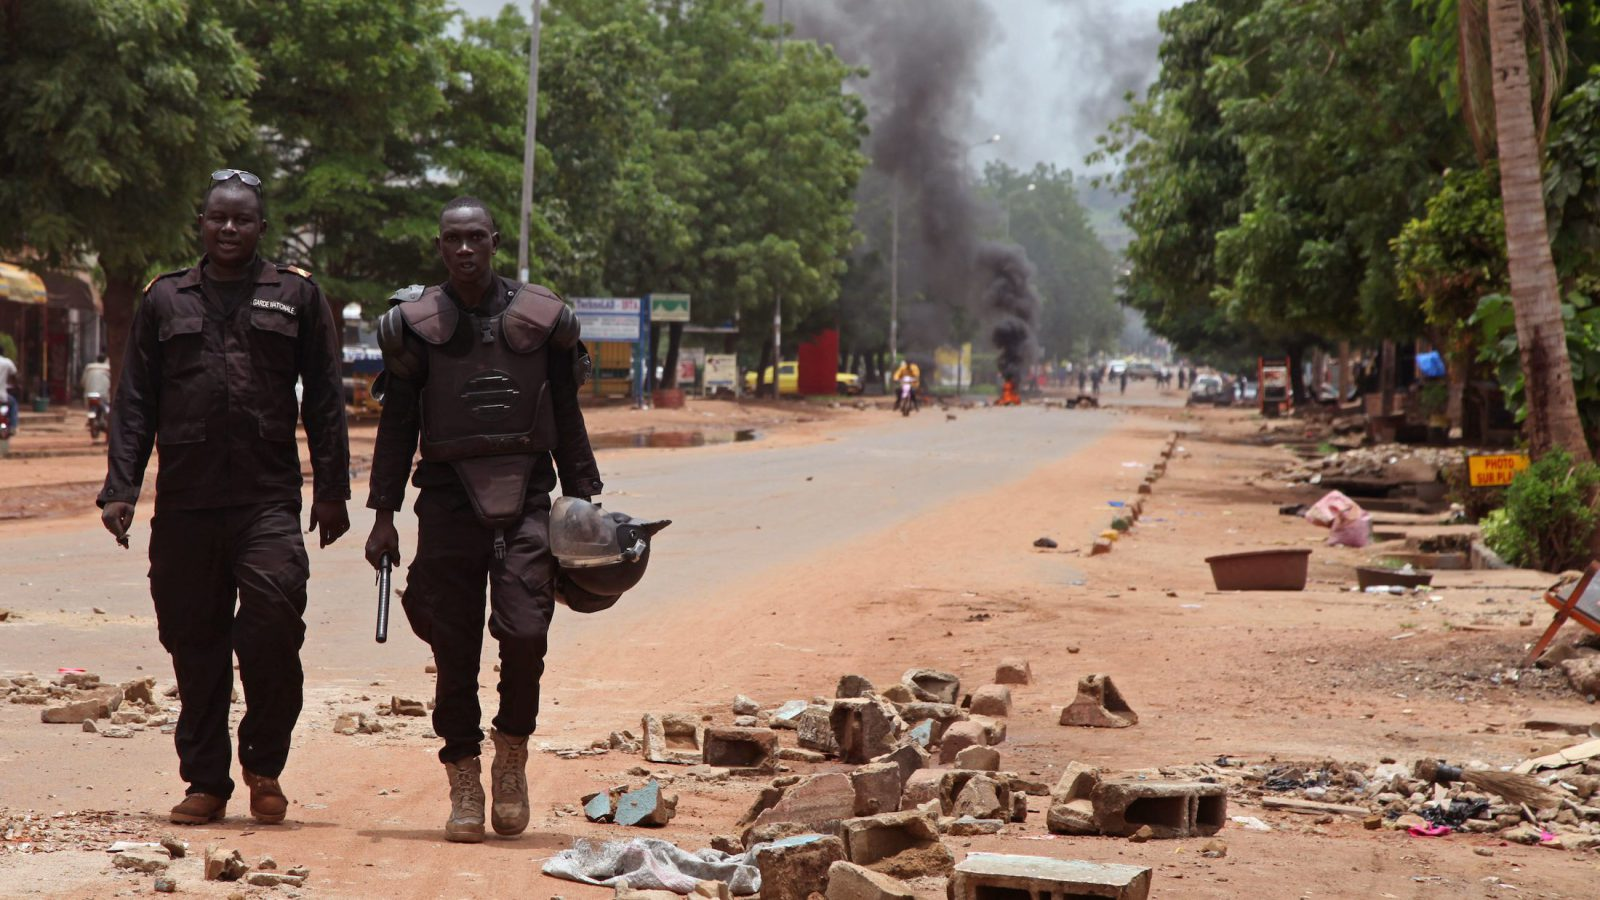 mali-police-walk-among-the-debris-after-a-protest-in-bamako-mali-e1471596074924